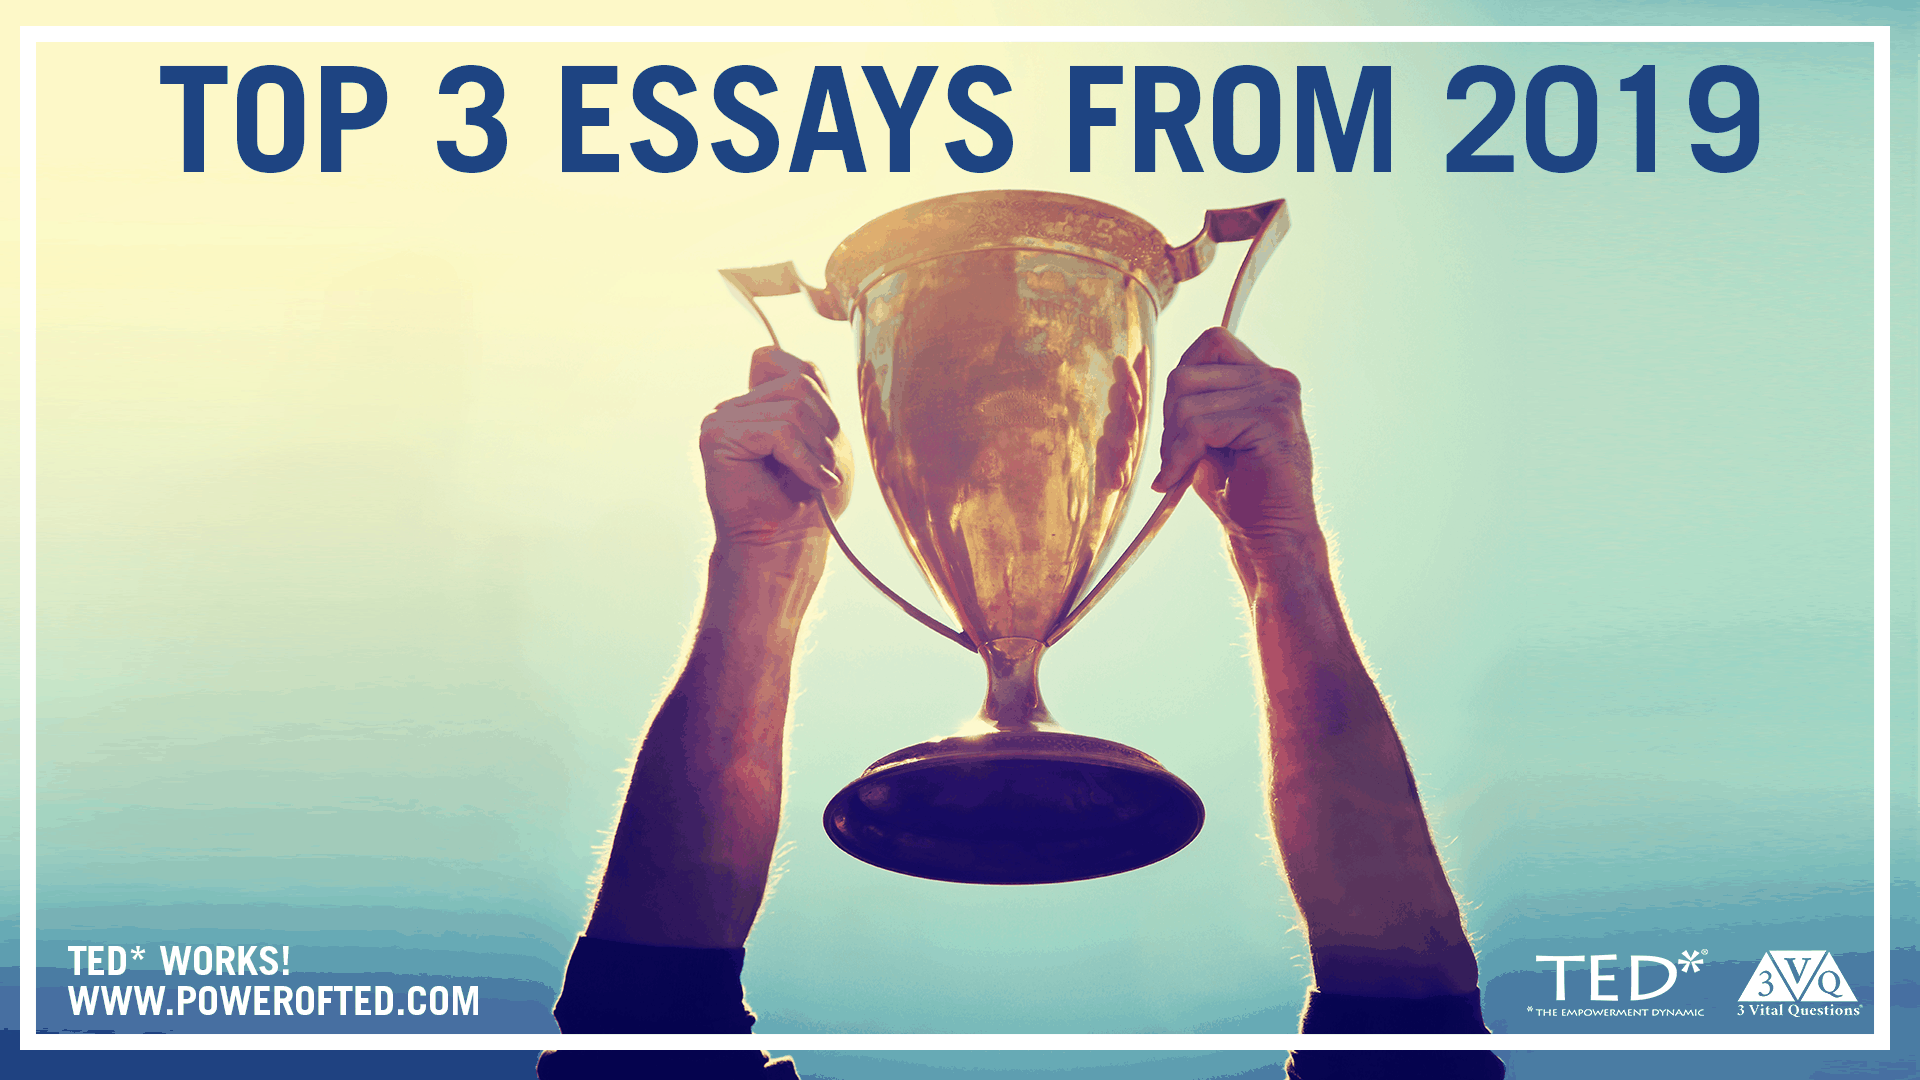 Top 3 Essays from 2019